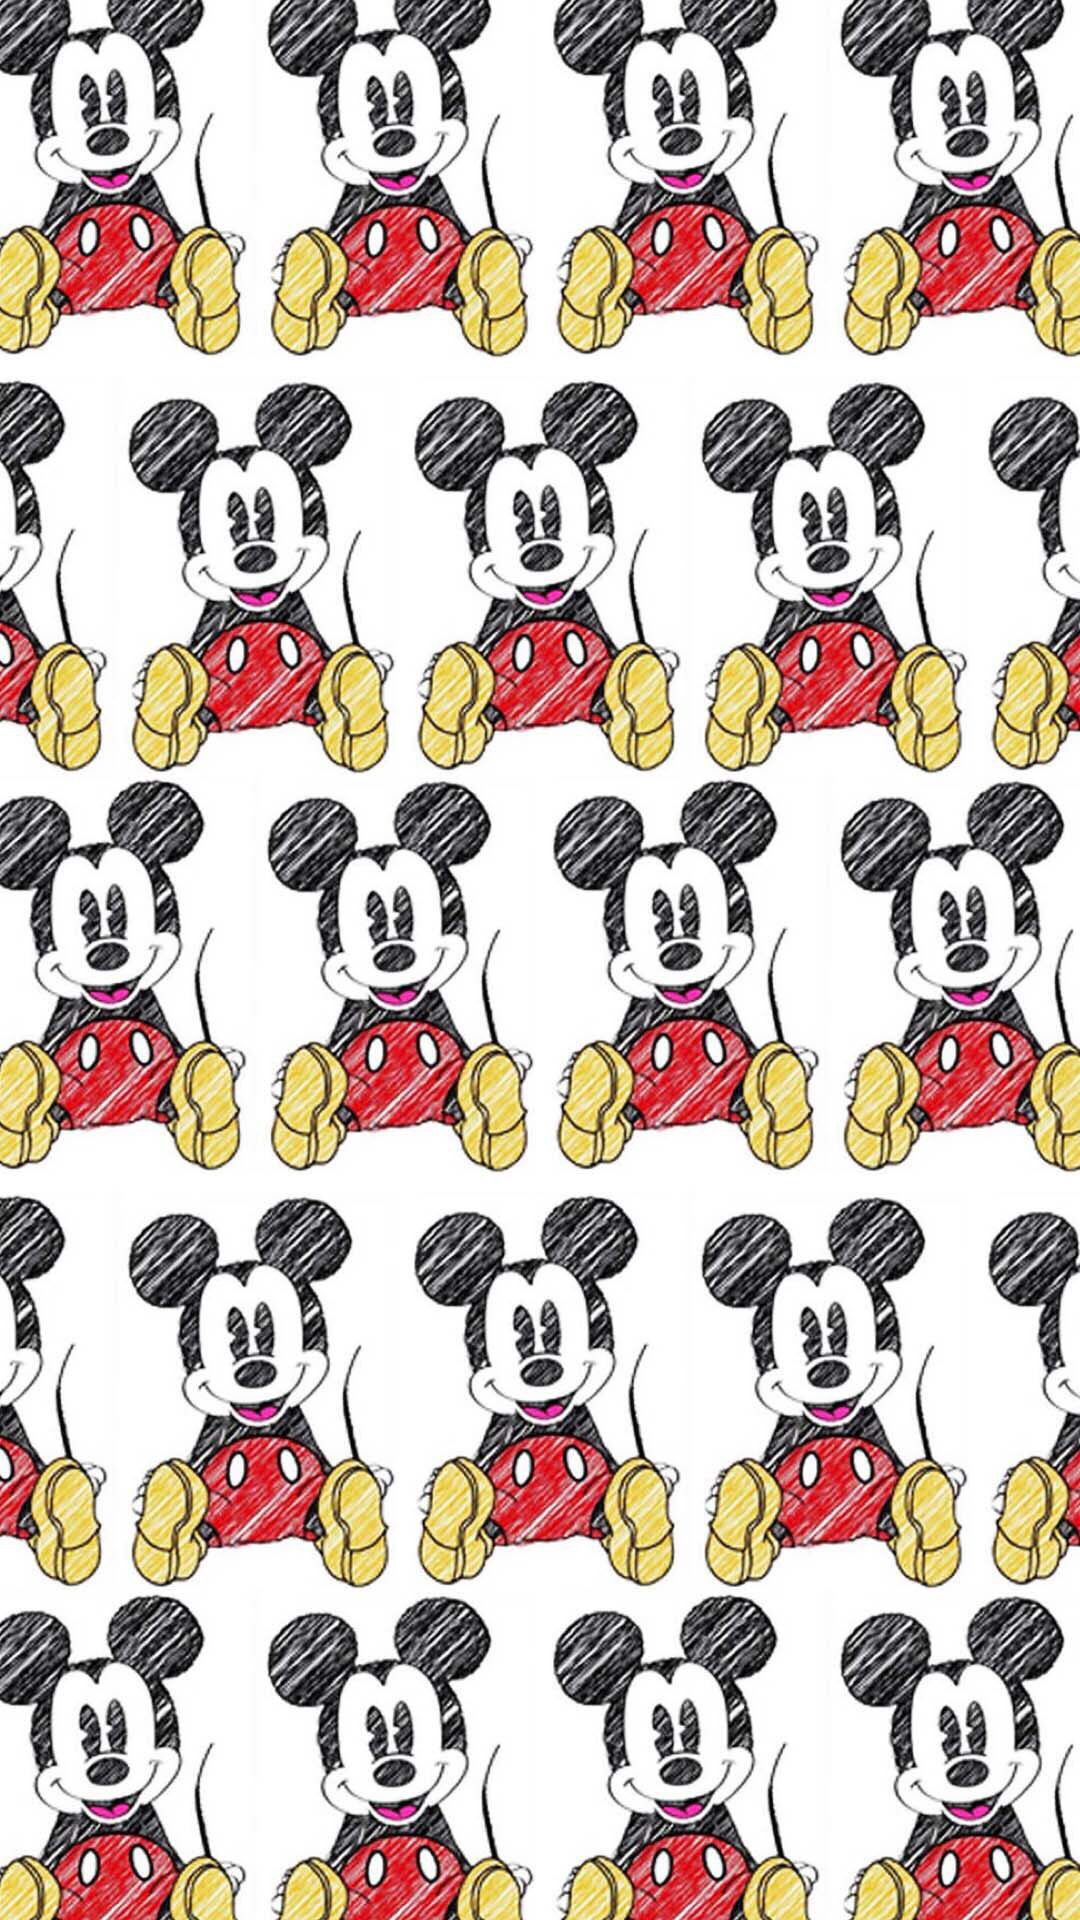 Iphone Backgrounds Wallpapers Cellphone Wallpaper Mickey Mouse Pattern Mikey Minnie Background Images Papo